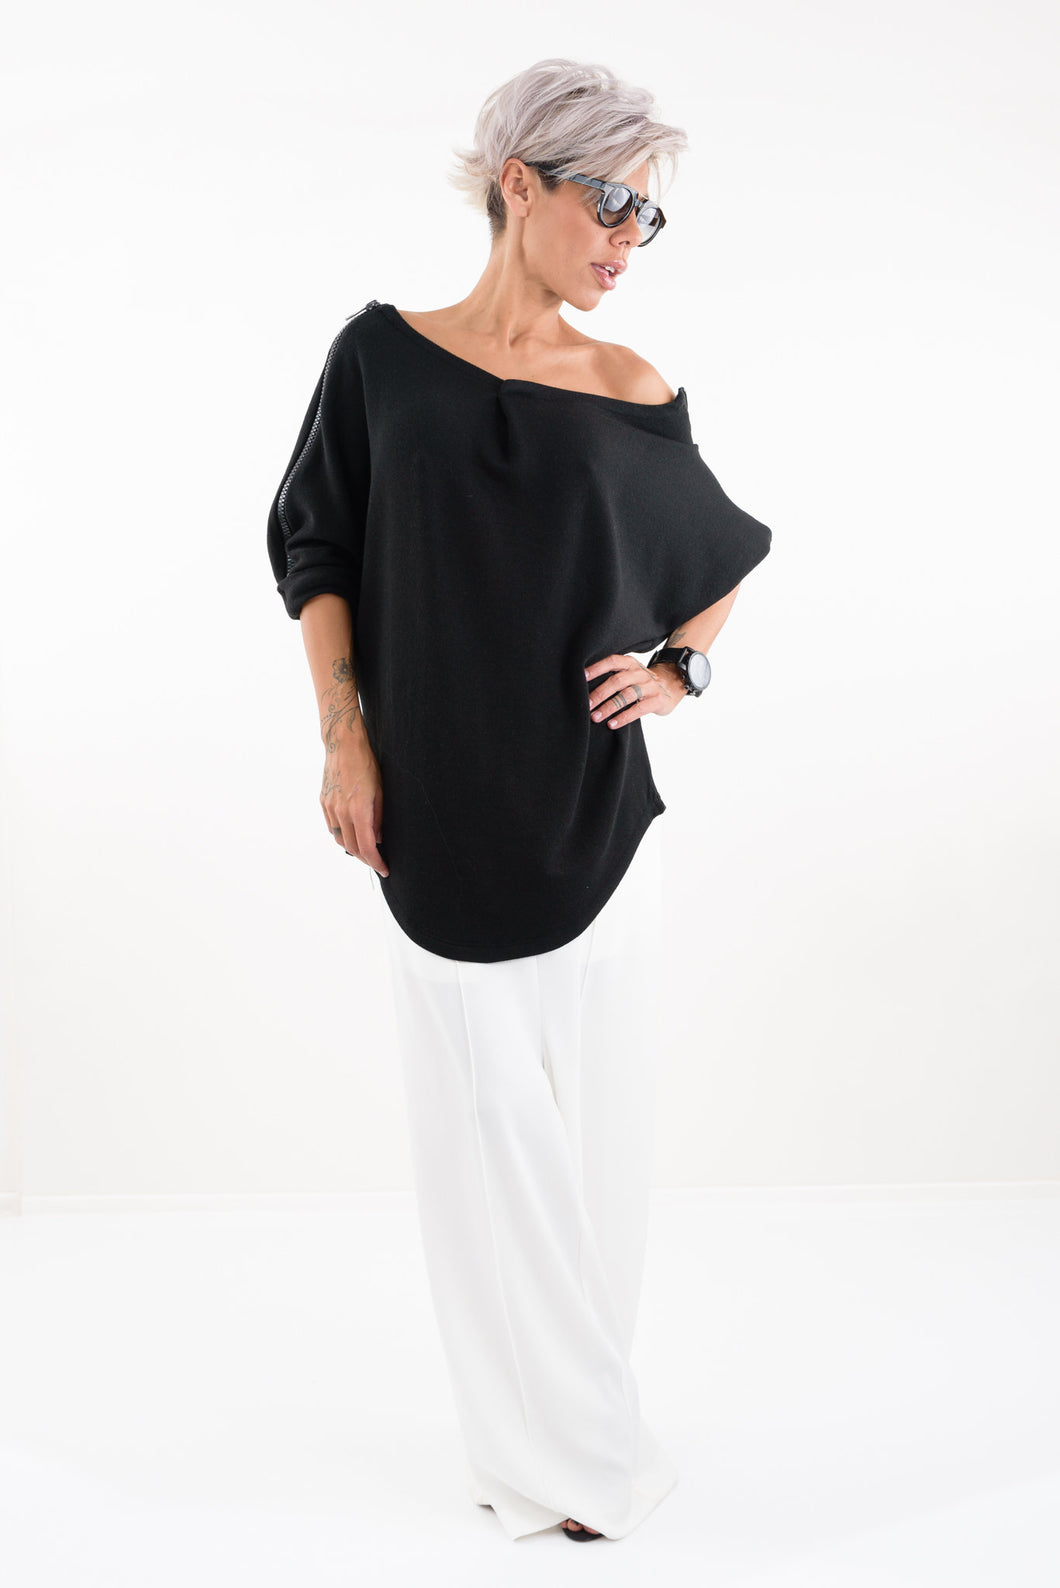 Knit Soft Cotton Blouse with Zipper on the Sleeves - Clothes By Locker Room